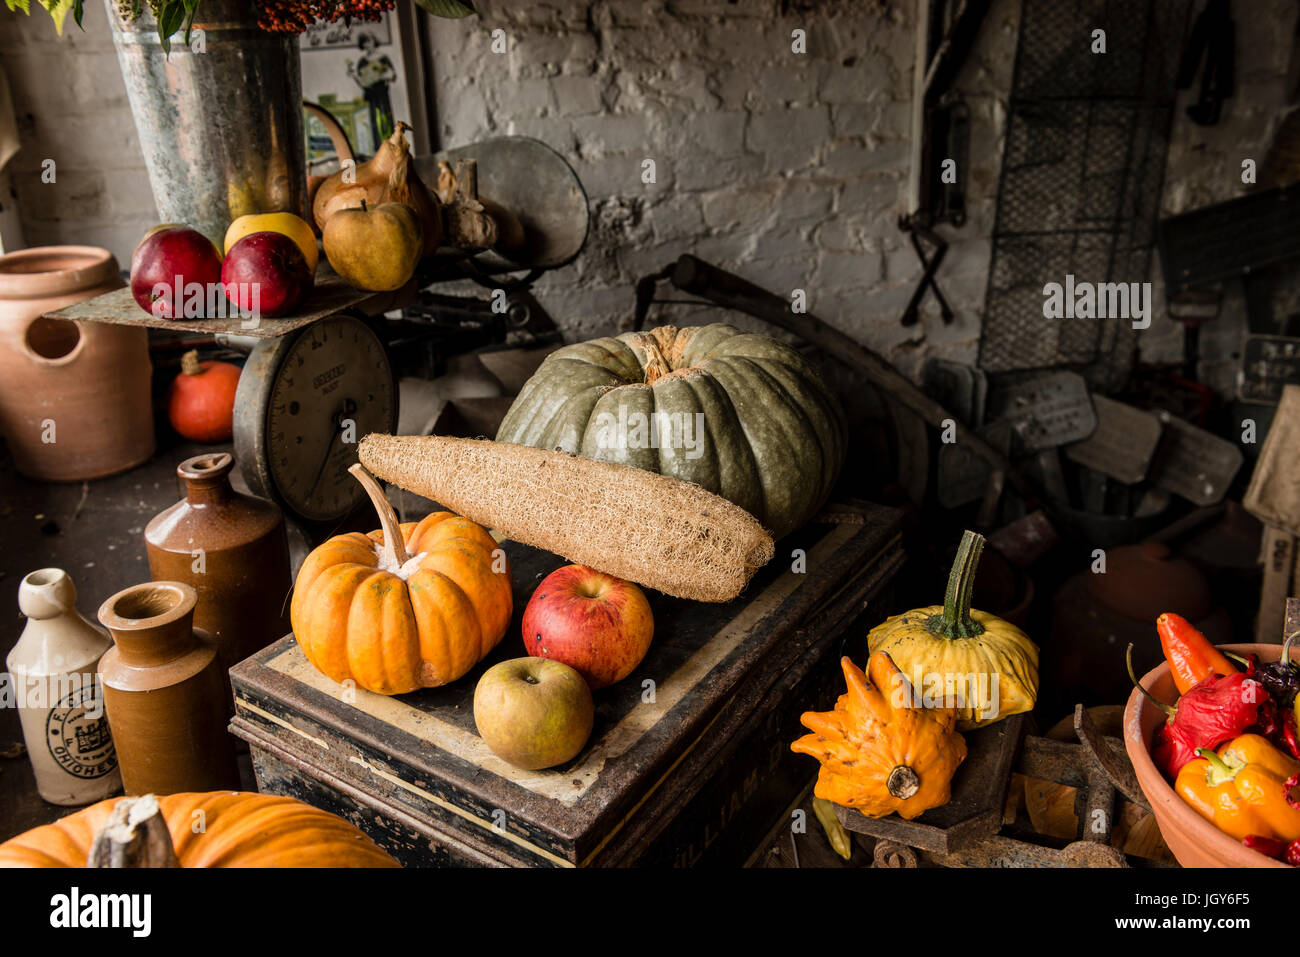 Still life of carefully arranged various types of pumpkins and fruits in a garden shed for display Stock Photo